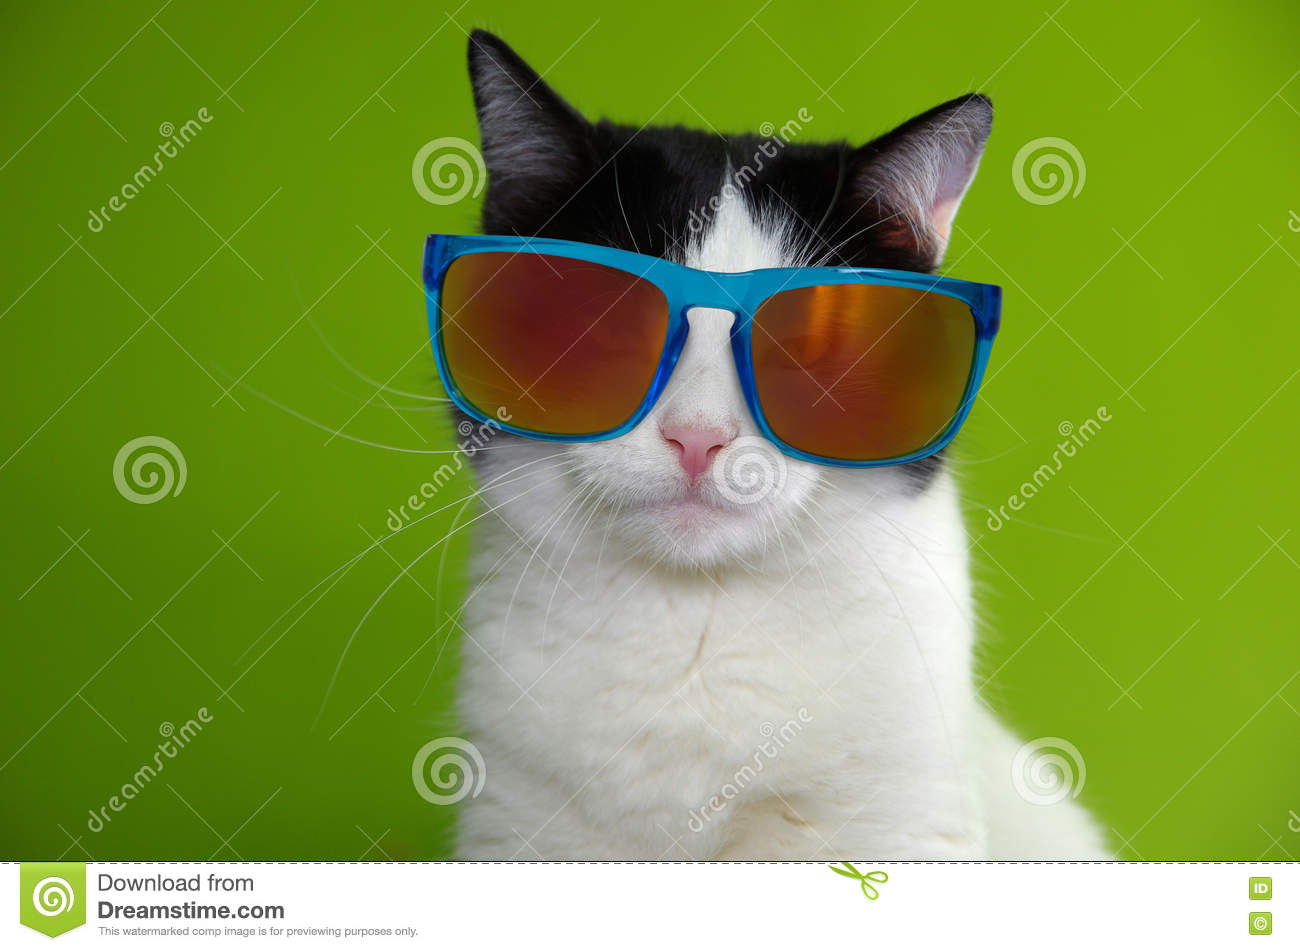 Portrait Of Cat Wearing Sunglasses Stock Image ...